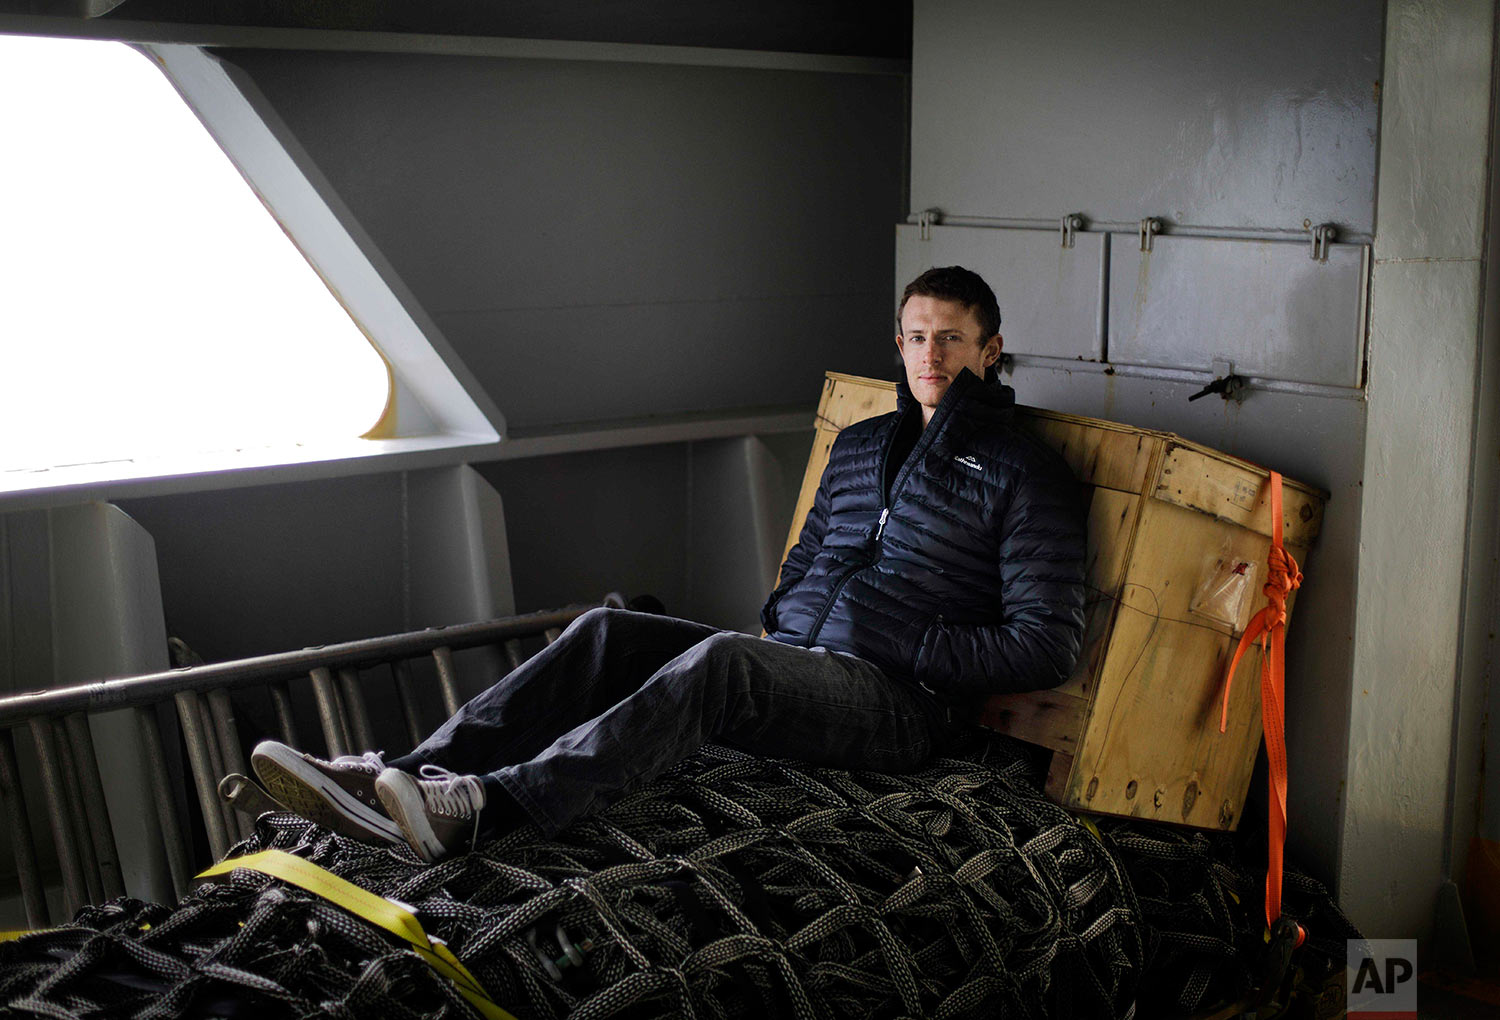 """Polar maritime lawyer Scott Joblin, 30, sits for a portrait aboard the Finnish icebreaker MSV Nordica as it sails north in the Bering Sea toward the Arctic, Wednesday, July 12, 2017. """"It's a chance to ground my research in real world context,"""" said Joblin who is pursuing his doctorate in international law at Australian National University. """"I don't think the size or the scale [of the Arctic] is anything you can comprehend. The trip so far contextualizes how hard it is to get there,"""" said Joblin of the roughly nine days the ship will take to reach the Arctic Circle from its departure in Vancouver. """"It's really the frontier as it exists."""" (AP Photo/David Goldman)"""